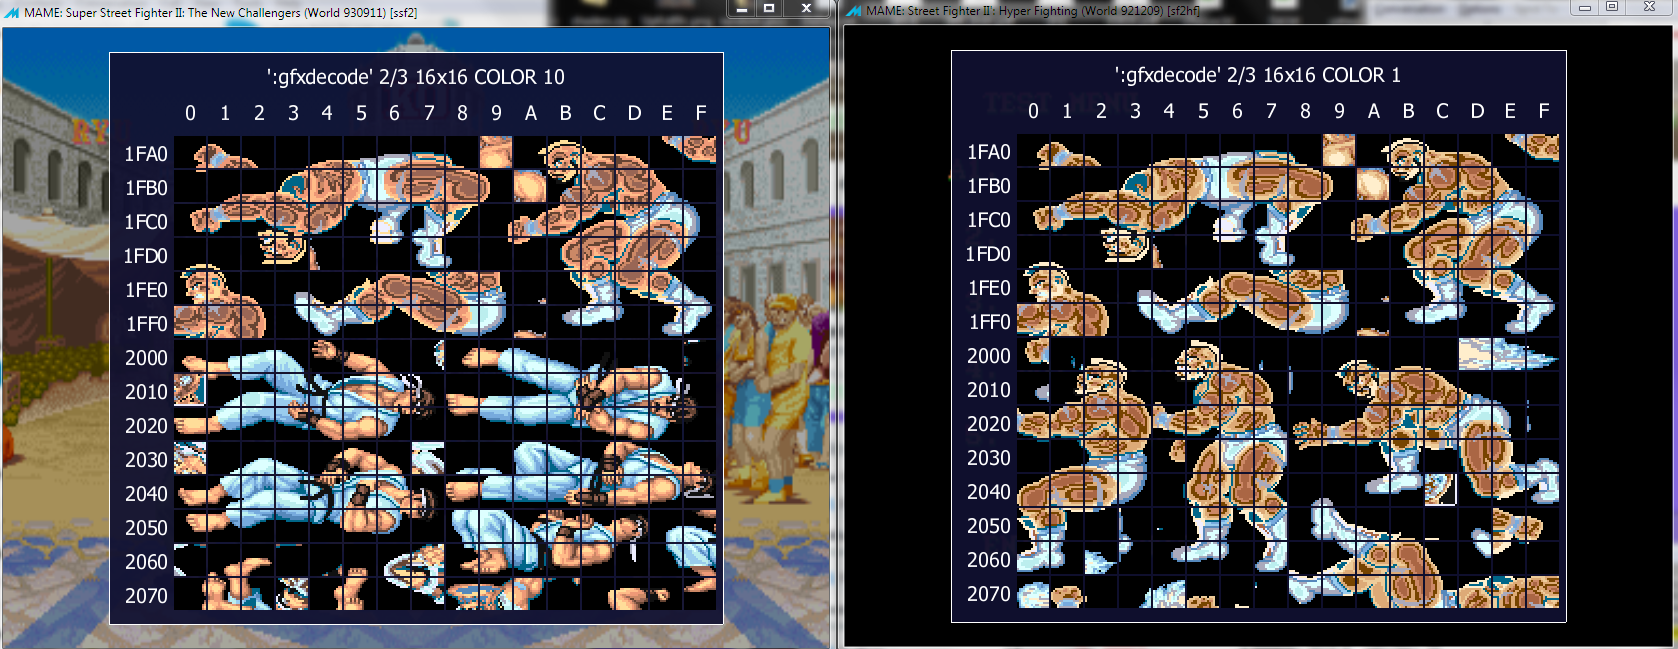 Hacking the ST rom - Super Street Fighter II Turbo